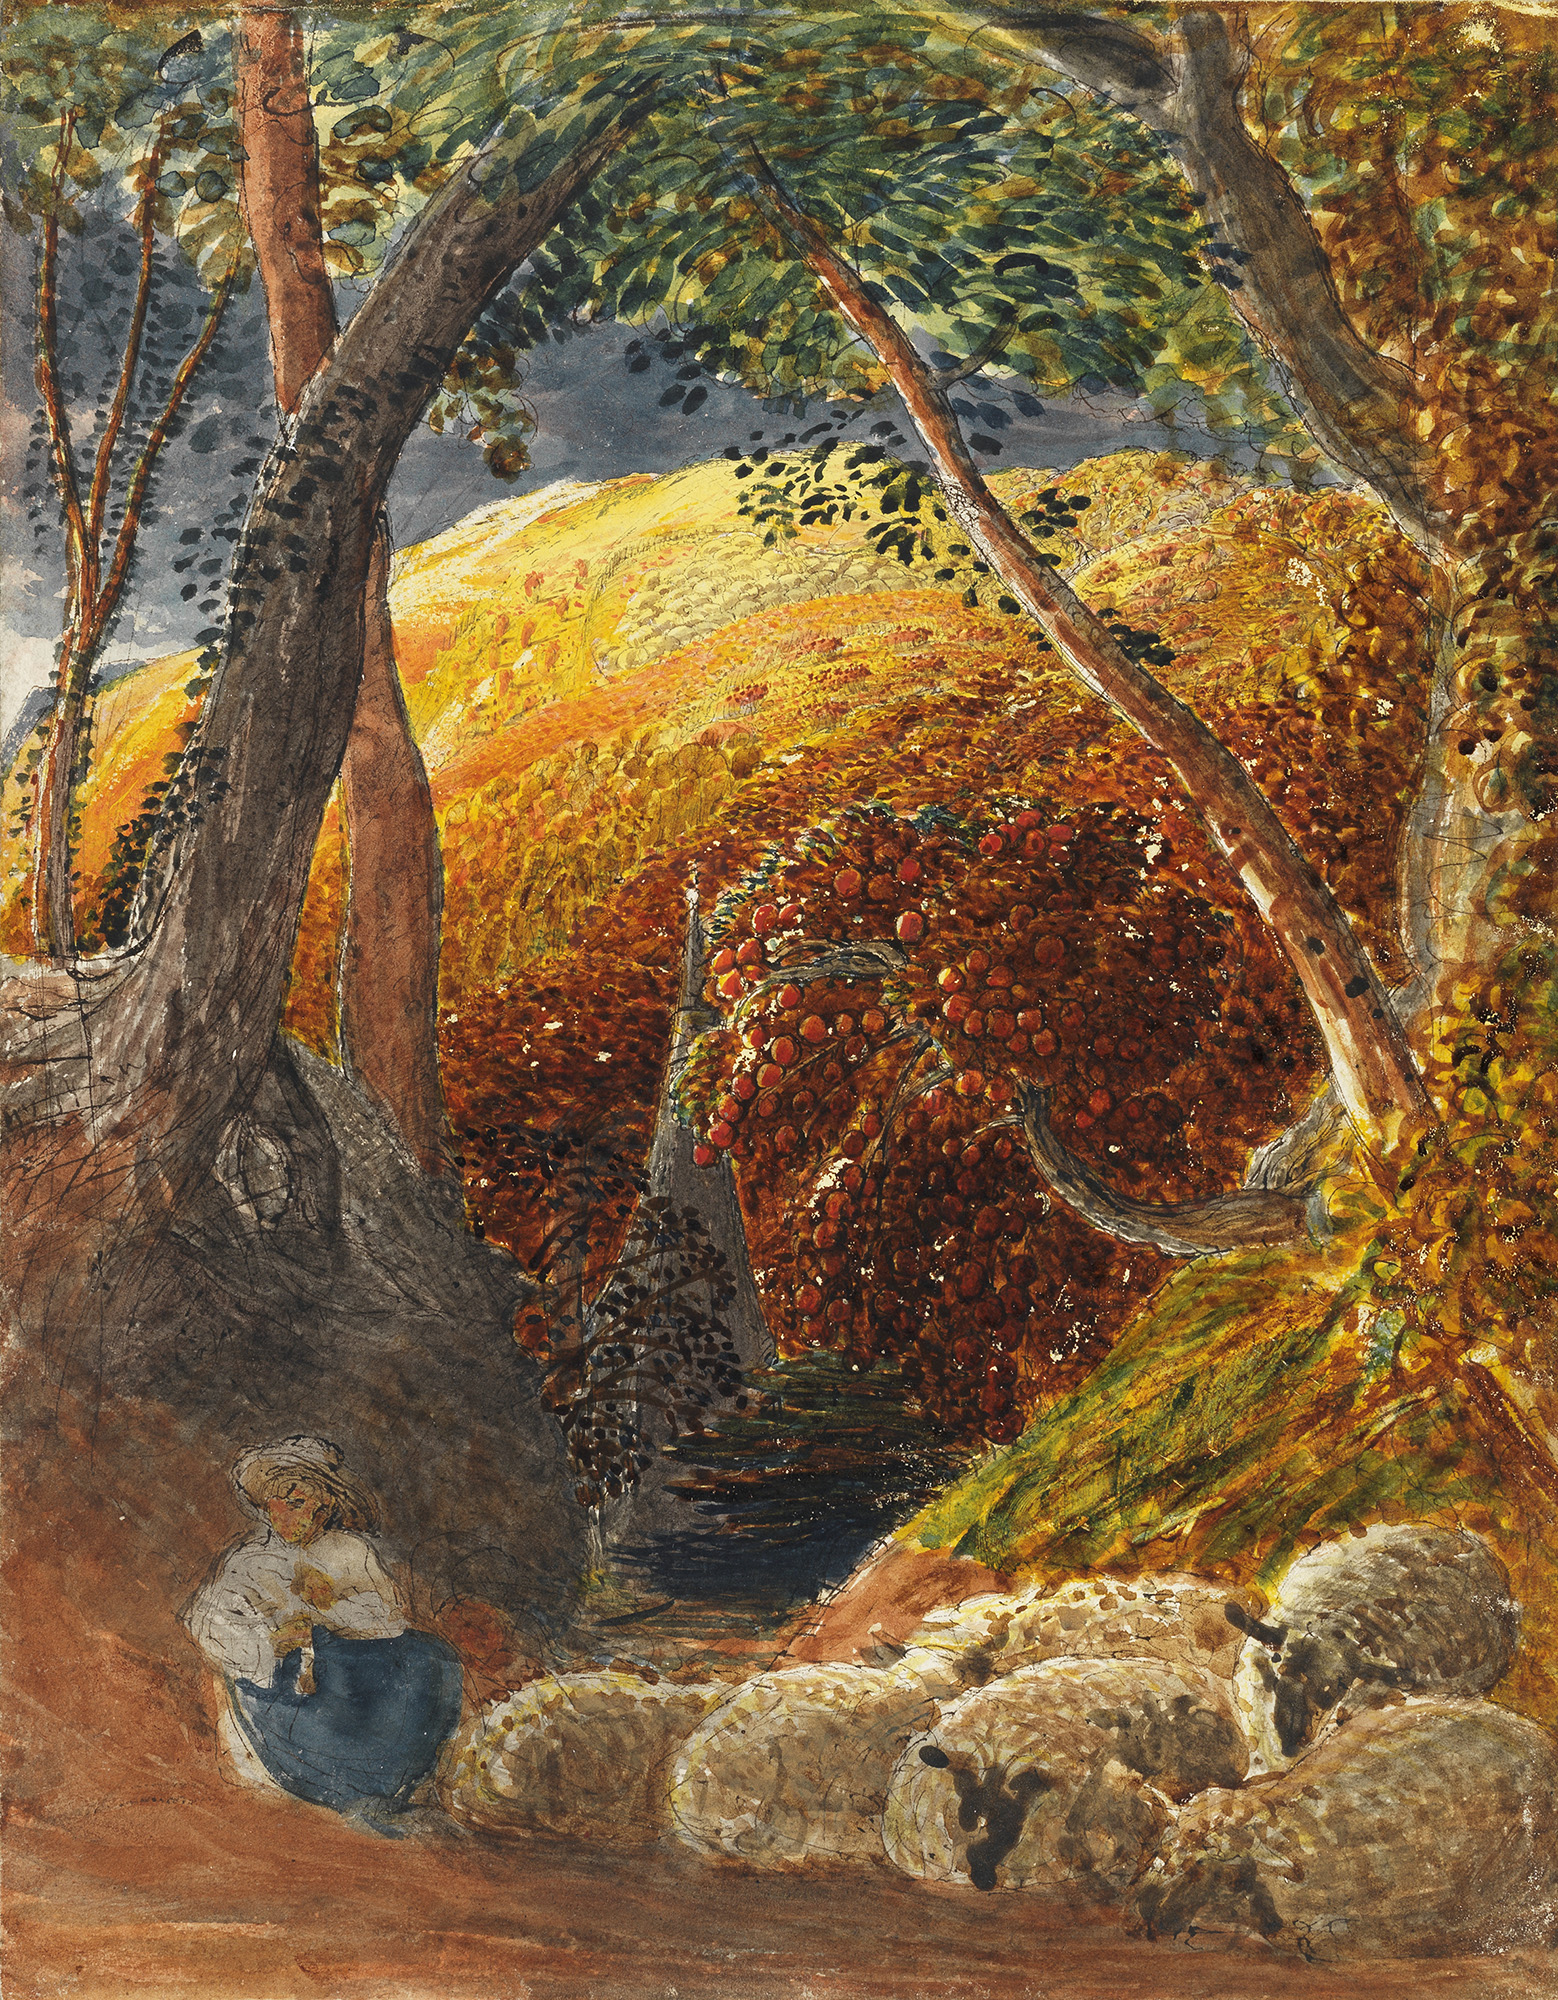 Colourful painting of abstract apple tree with person and sheep underneath